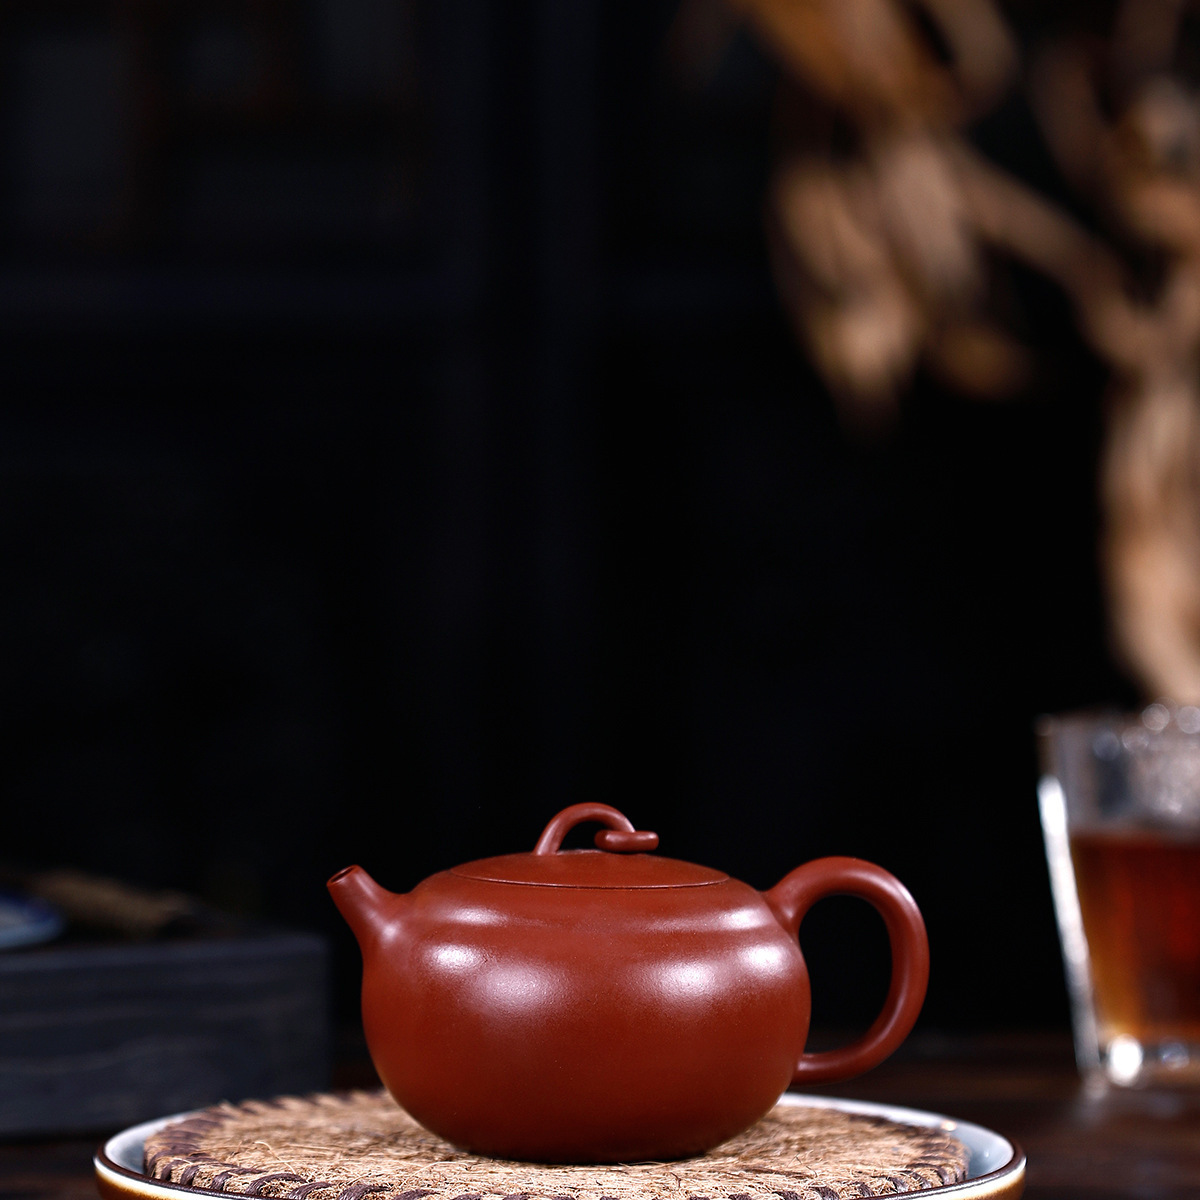 Manual Raw Ore Bright Red Robe The Moon Kettle Kungfu Online Infusion Of Tea Kettle Tea Set To Work In An Office Suit GiftManual Raw Ore Bright Red Robe The Moon Kettle Kungfu Online Infusion Of Tea Kettle Tea Set To Work In An Office Suit Gift